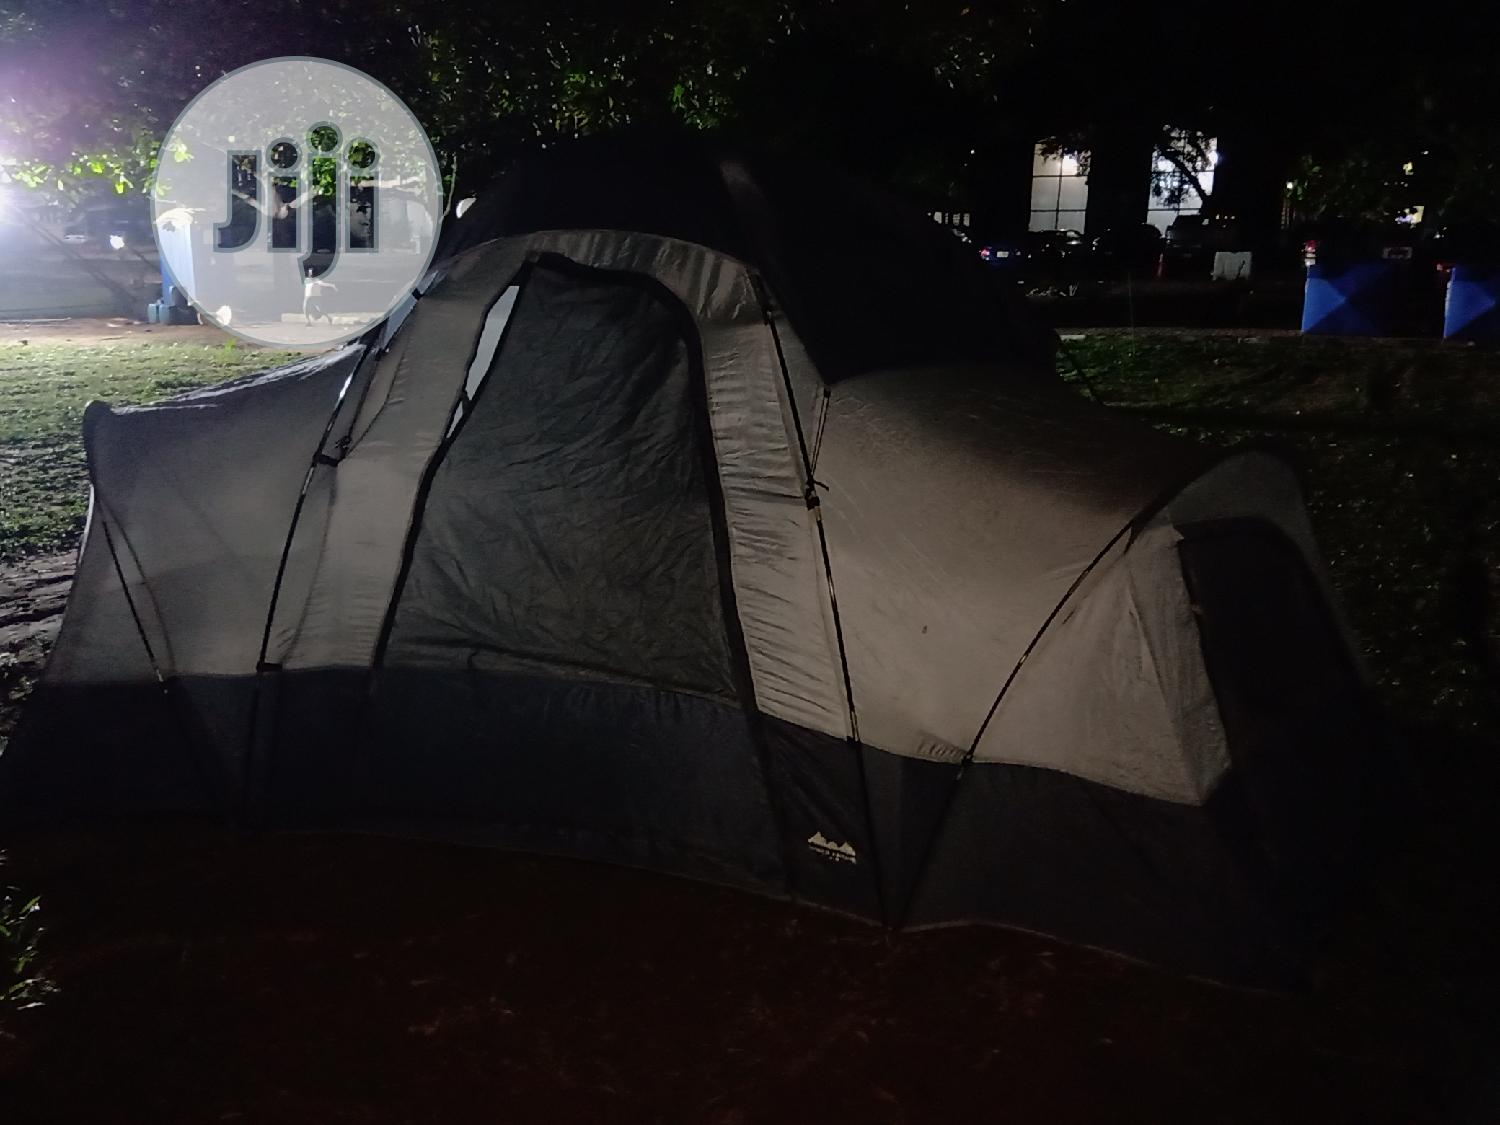 Big Durable Tent For 8 To 10 People